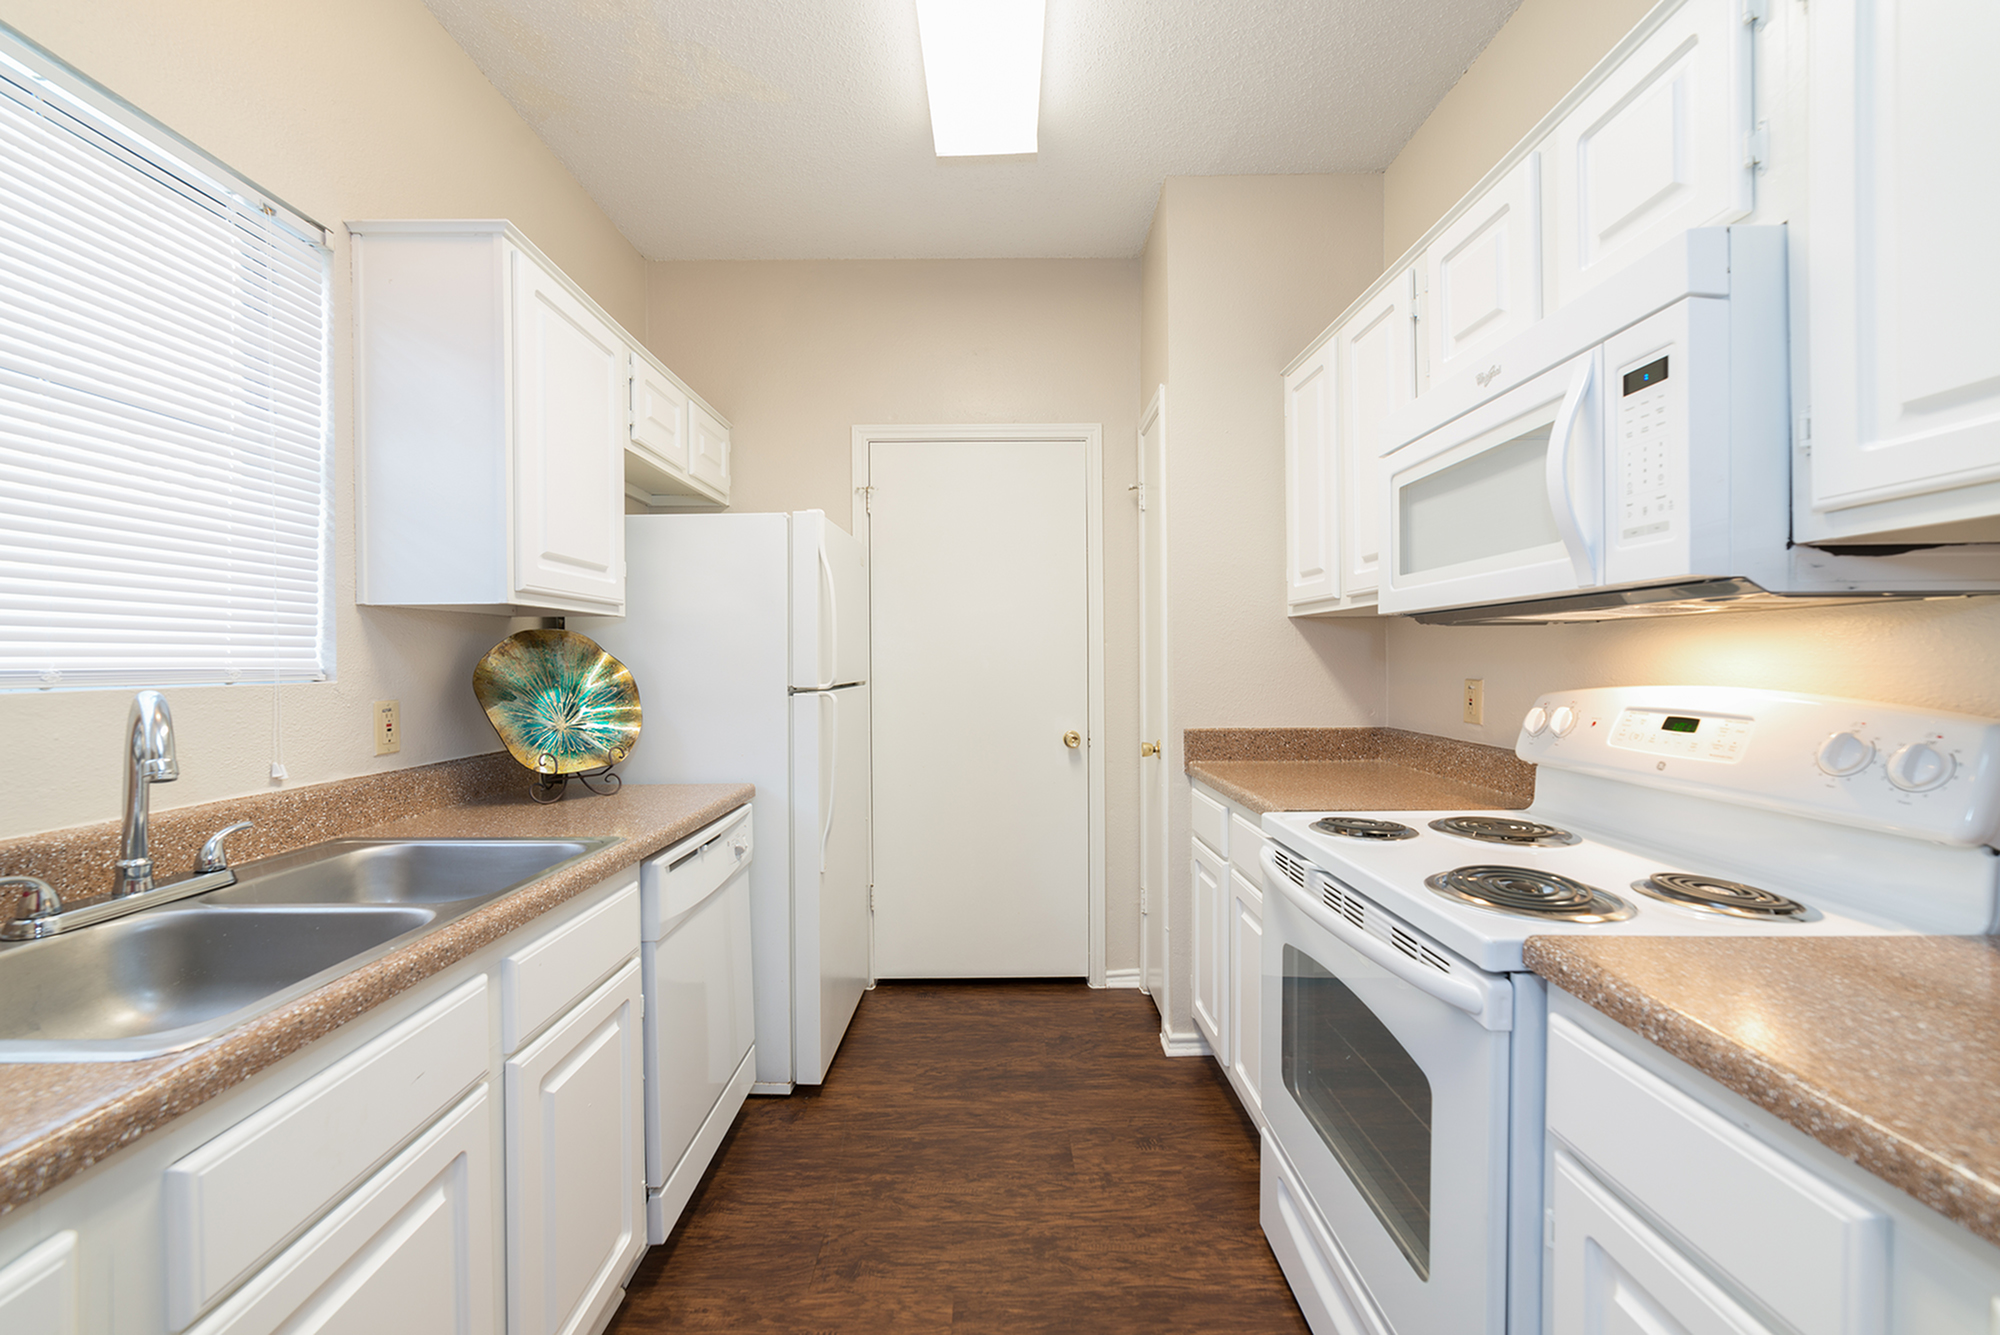 Kitchen with white cabinets and appliances | Canyon Creek apartment